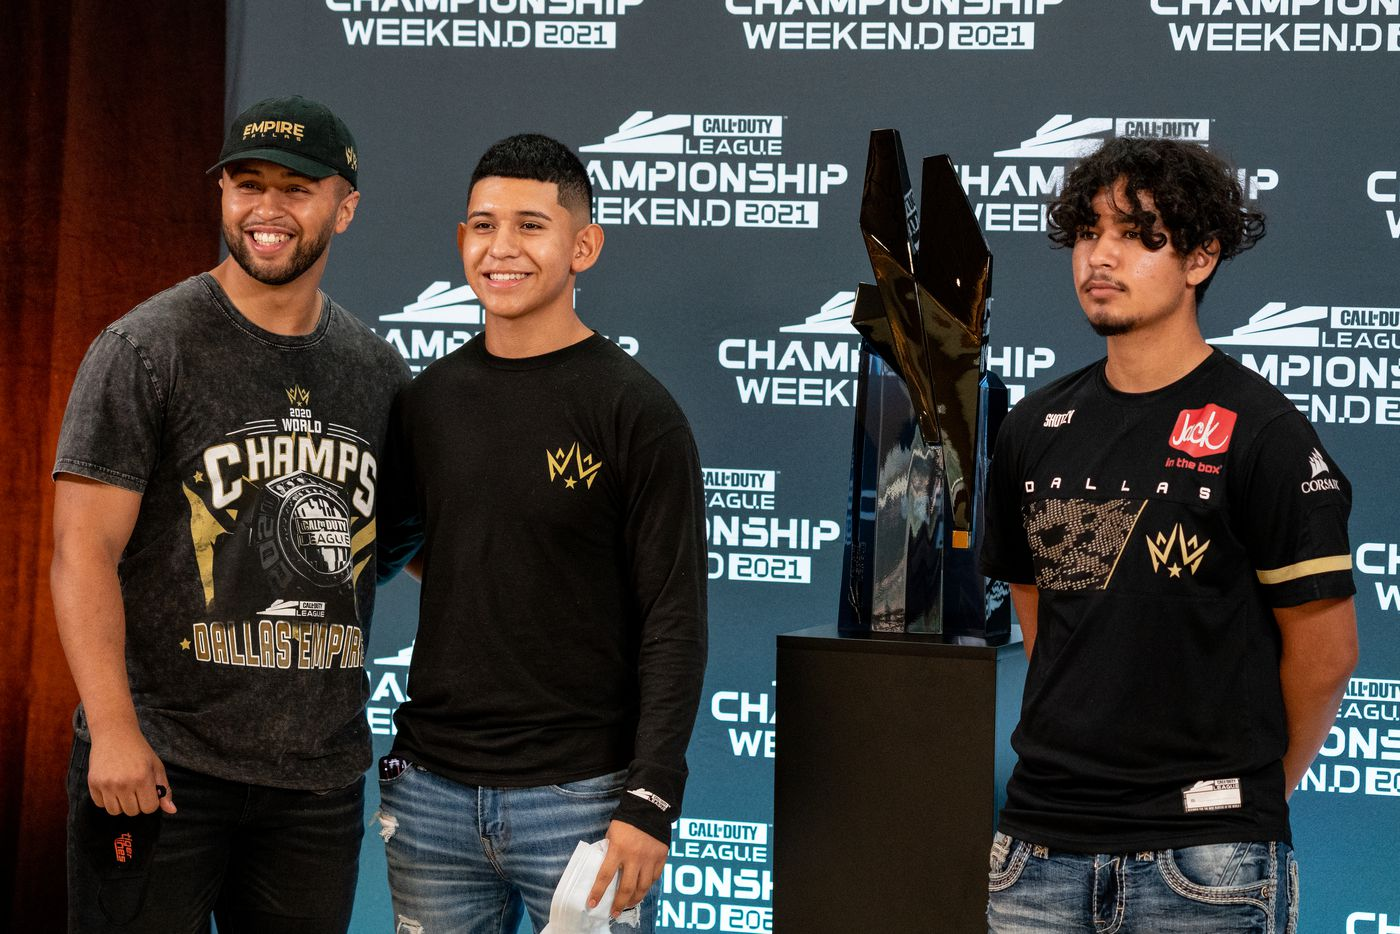 """From left, Steven Quevedo, Gabriel Castro, and Xavier Castro, brothers of Dallas Empire player Anthony """"Shotzzy"""" Cuevas-Castro, stand next to the Call of Duty league trophy before the start of the winners final between the Empire and the Atlanta FaZe at the Galen Center on Saturday, August 21, 2021 in Los Angeles, California.  (Justin L. Stewart/Special Contributor)"""